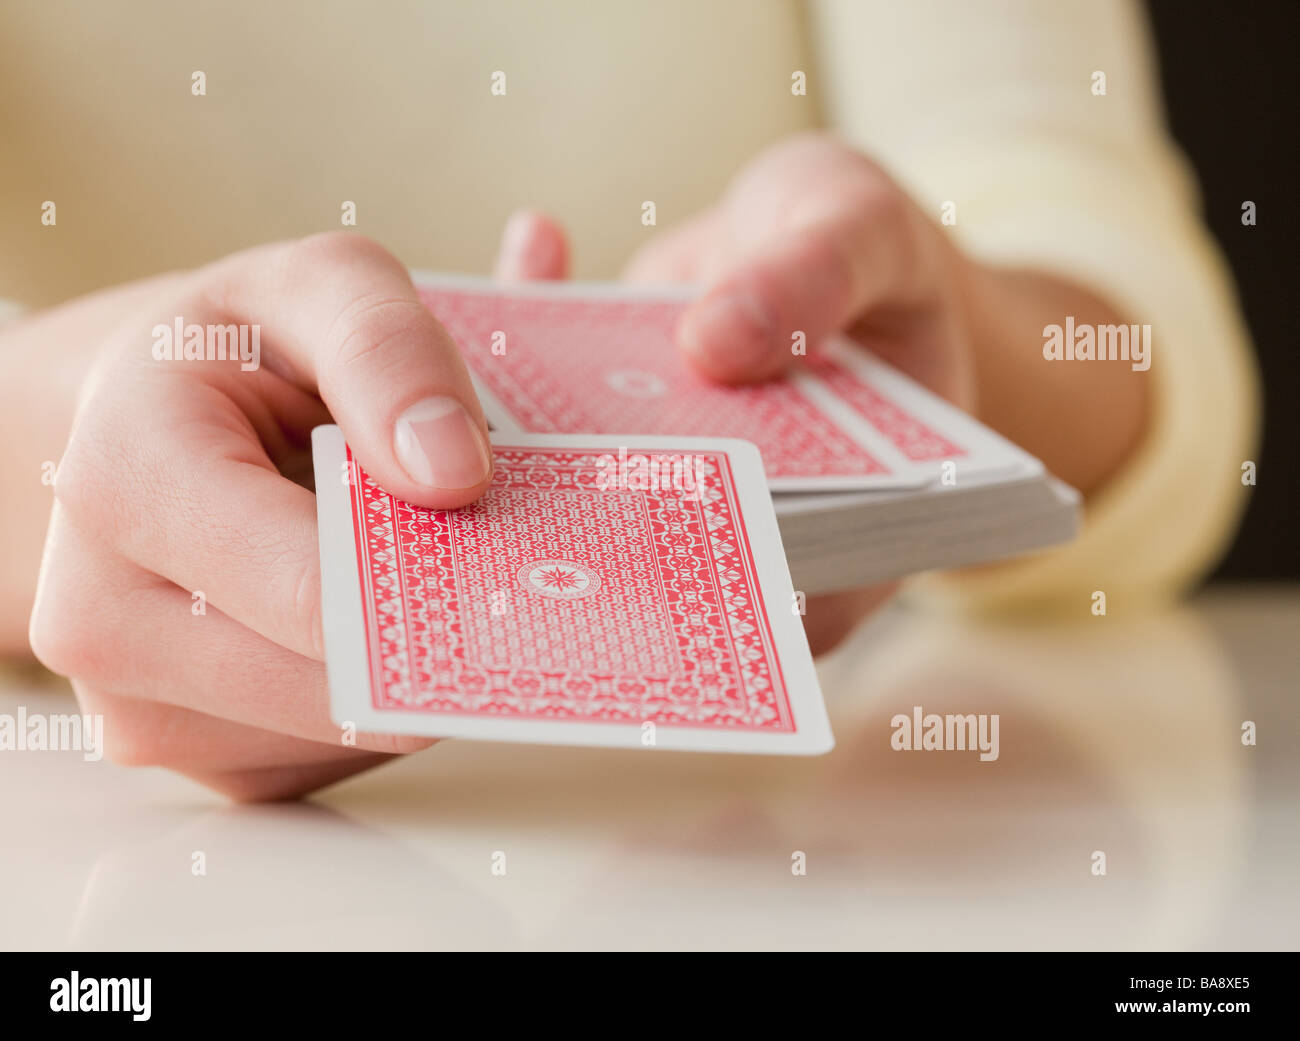 Woman dealing cards - Stock Image